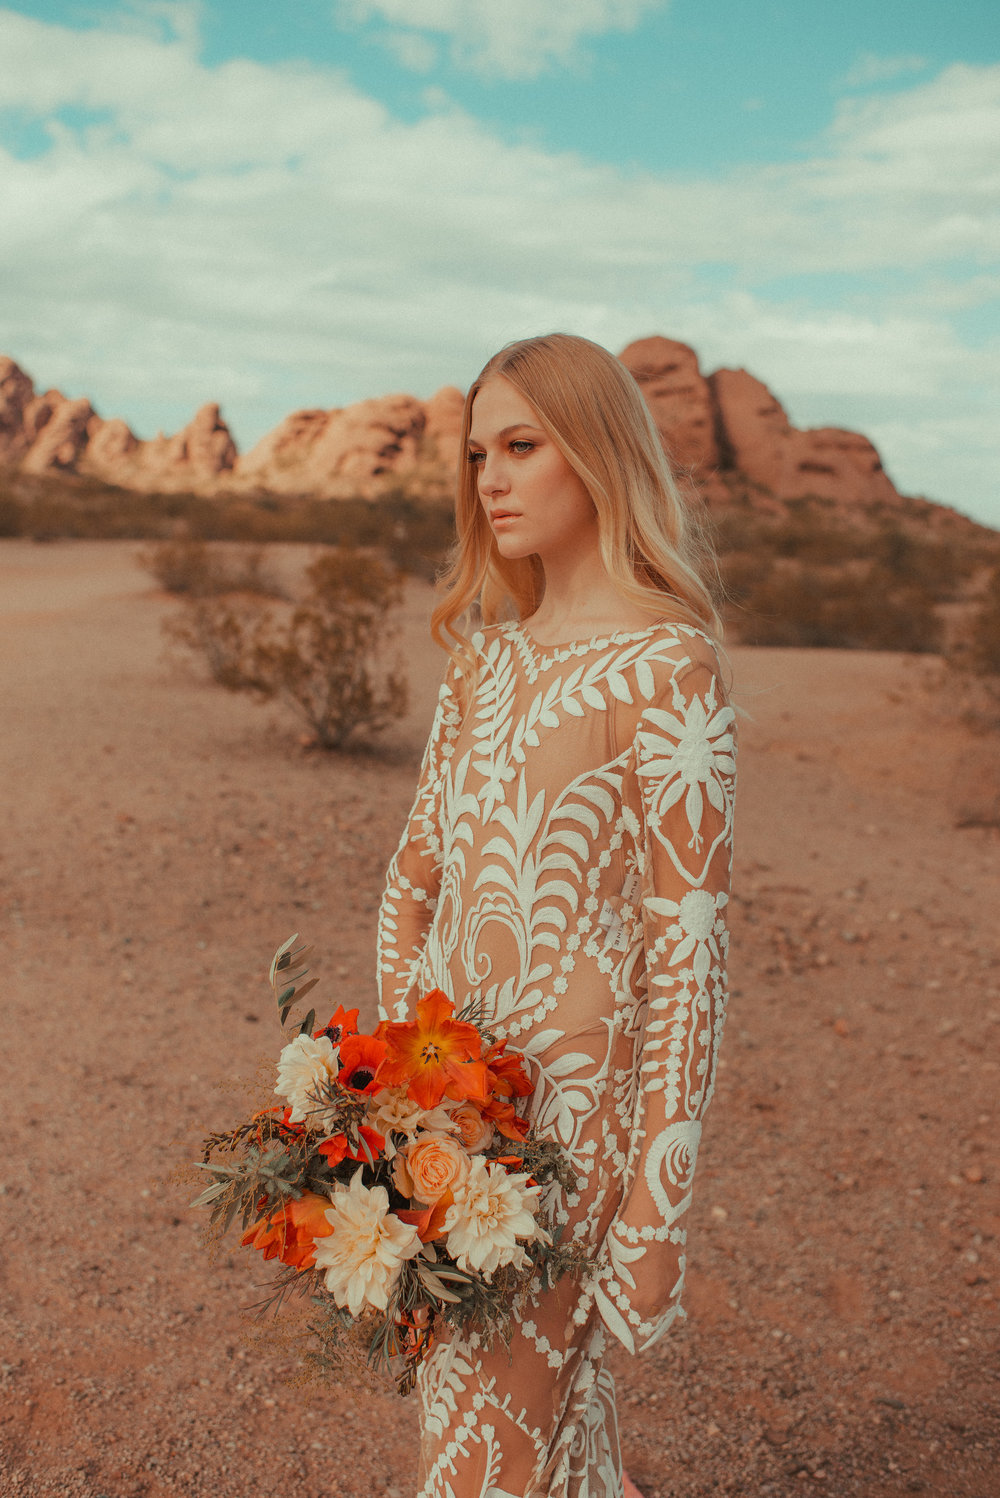 70's Inspired Bridal Shoot with Orange Bouquet